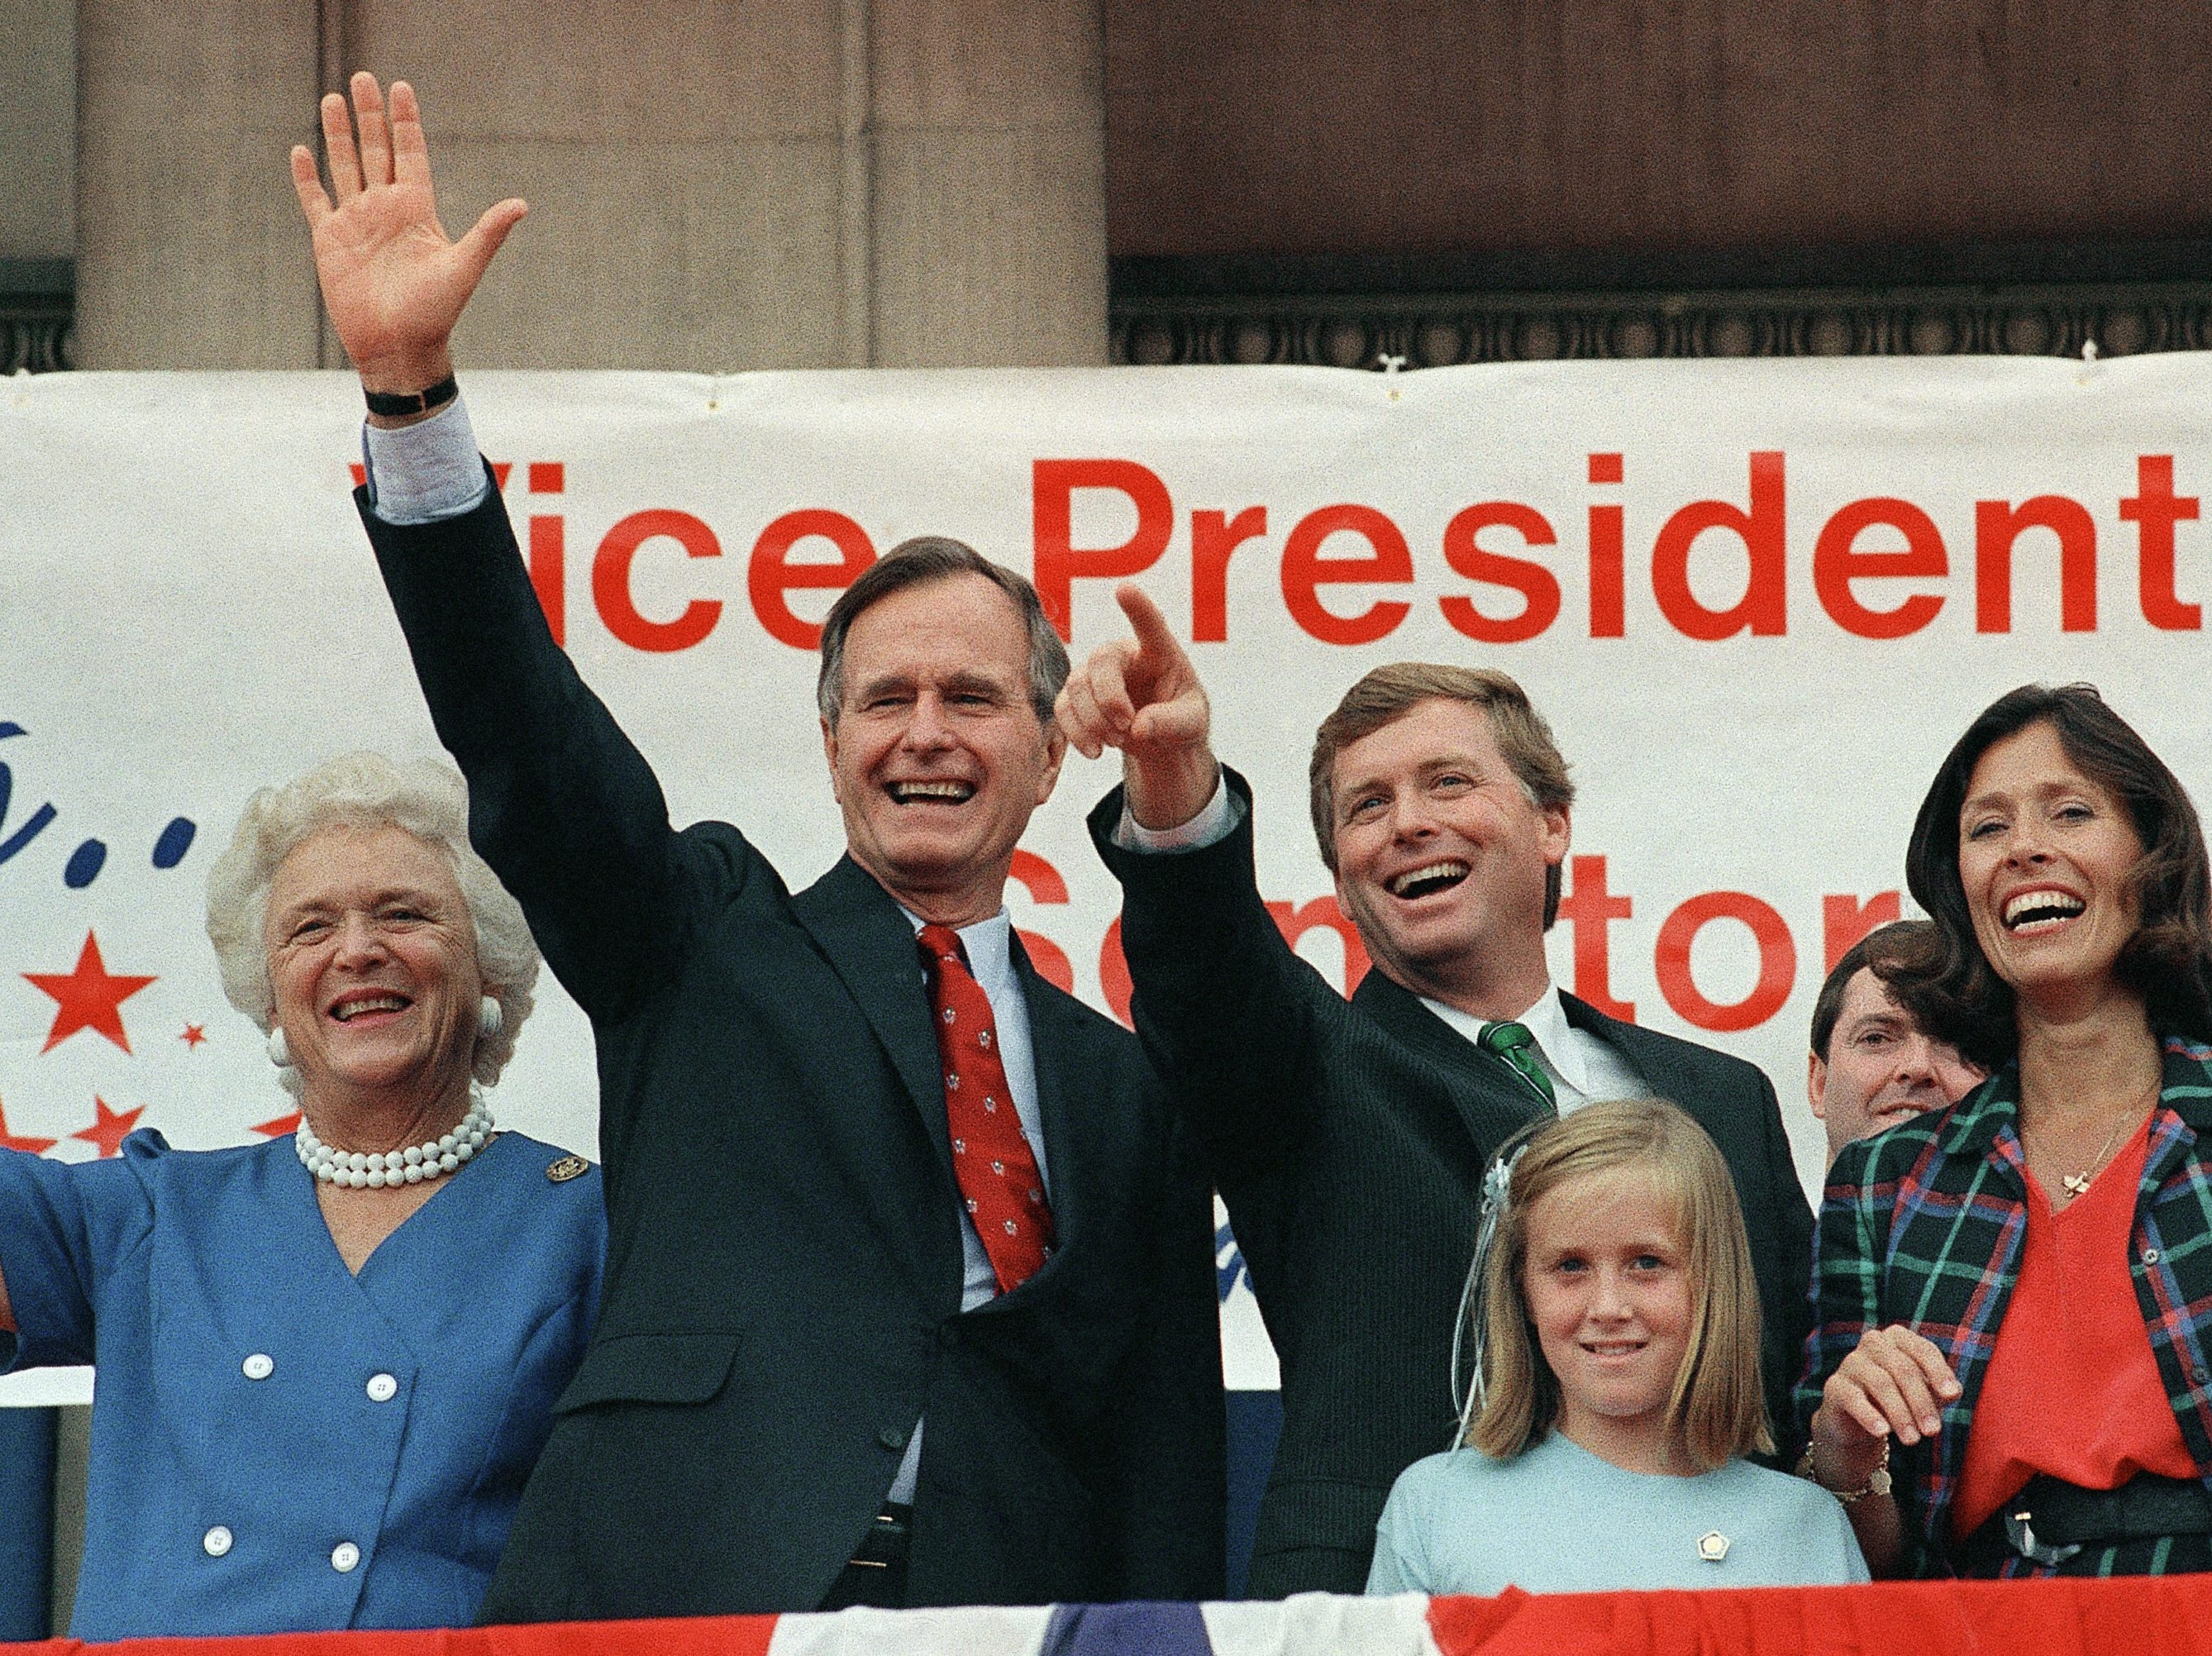 Republican presidential nominee George H.W. Bush with his wife, Barbara, left, begins the campaign with a rally in Sen. Dan Quayle's hometown of Huntington, Indiana  Friday, August 19, 1988. Quayle with his wife, Marilyn and daughter, Corinne, right, greeted supporters across the street from the newspaper Quayle published. (AP Photo/Scott Applewhite)